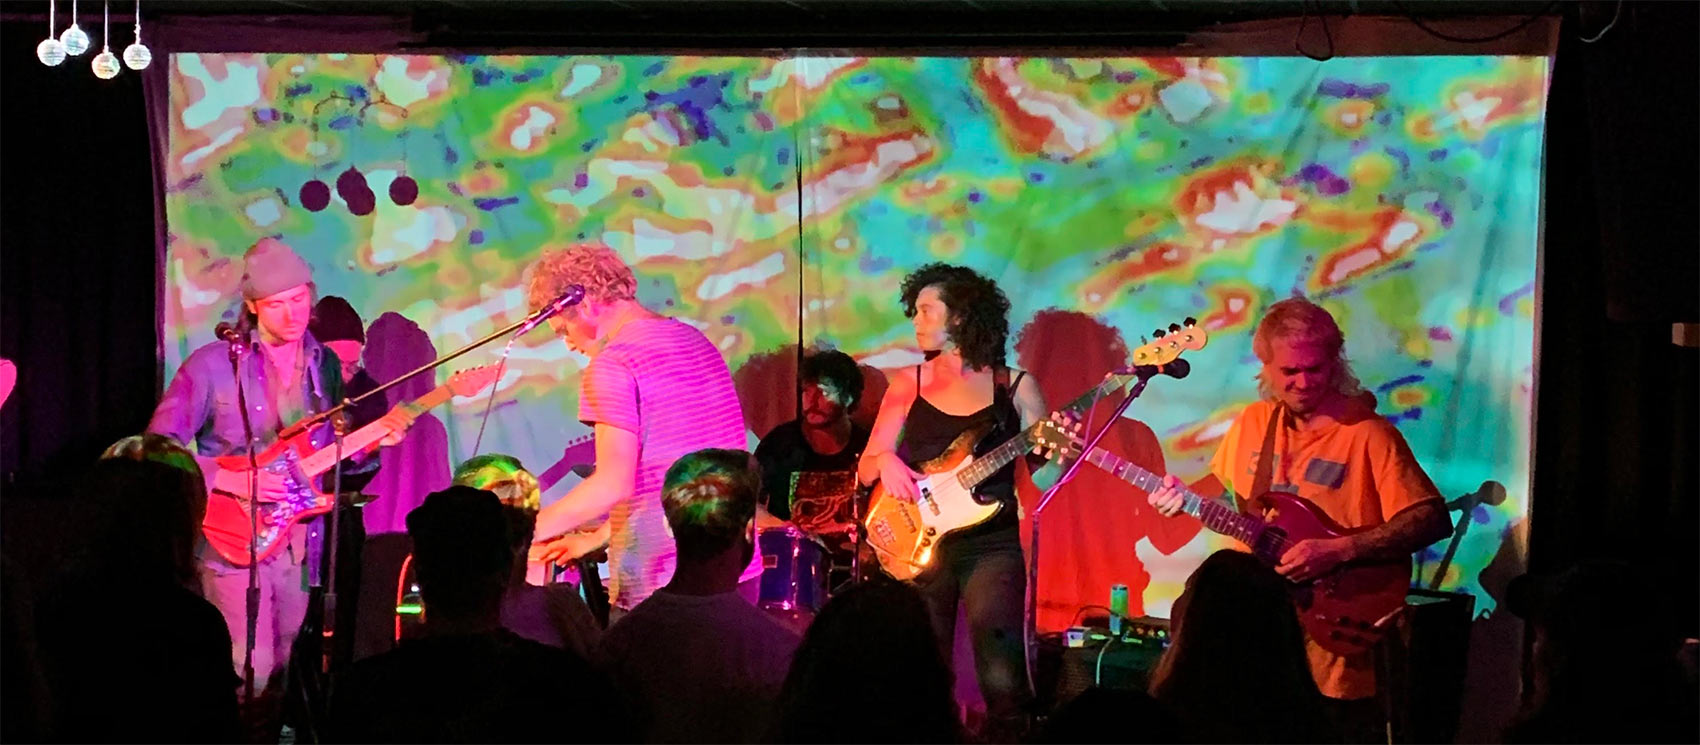 Stage with live band and colorful backdrop. Band is Carinae from Western Massachusetts.